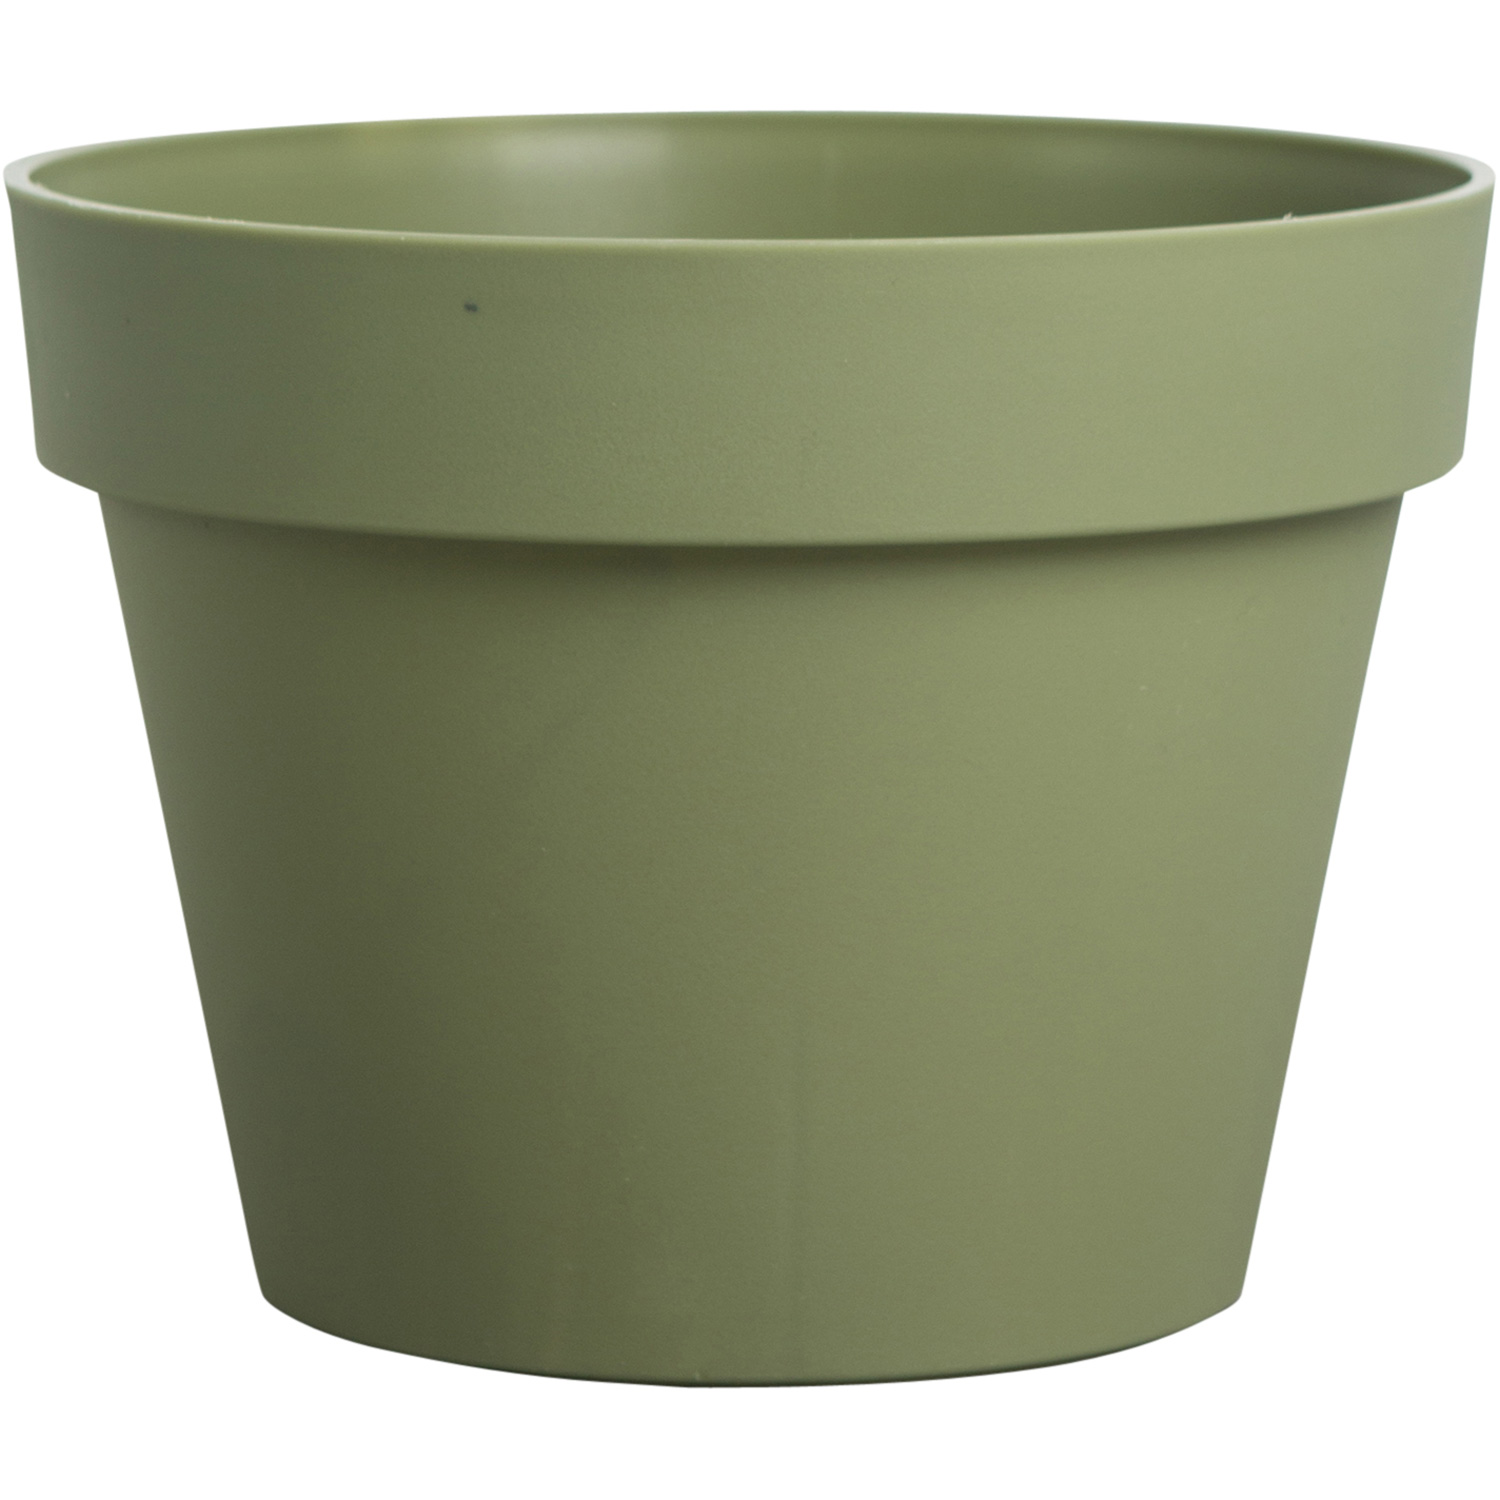 Bilde av By On-Brixton Pot 17x13 cm